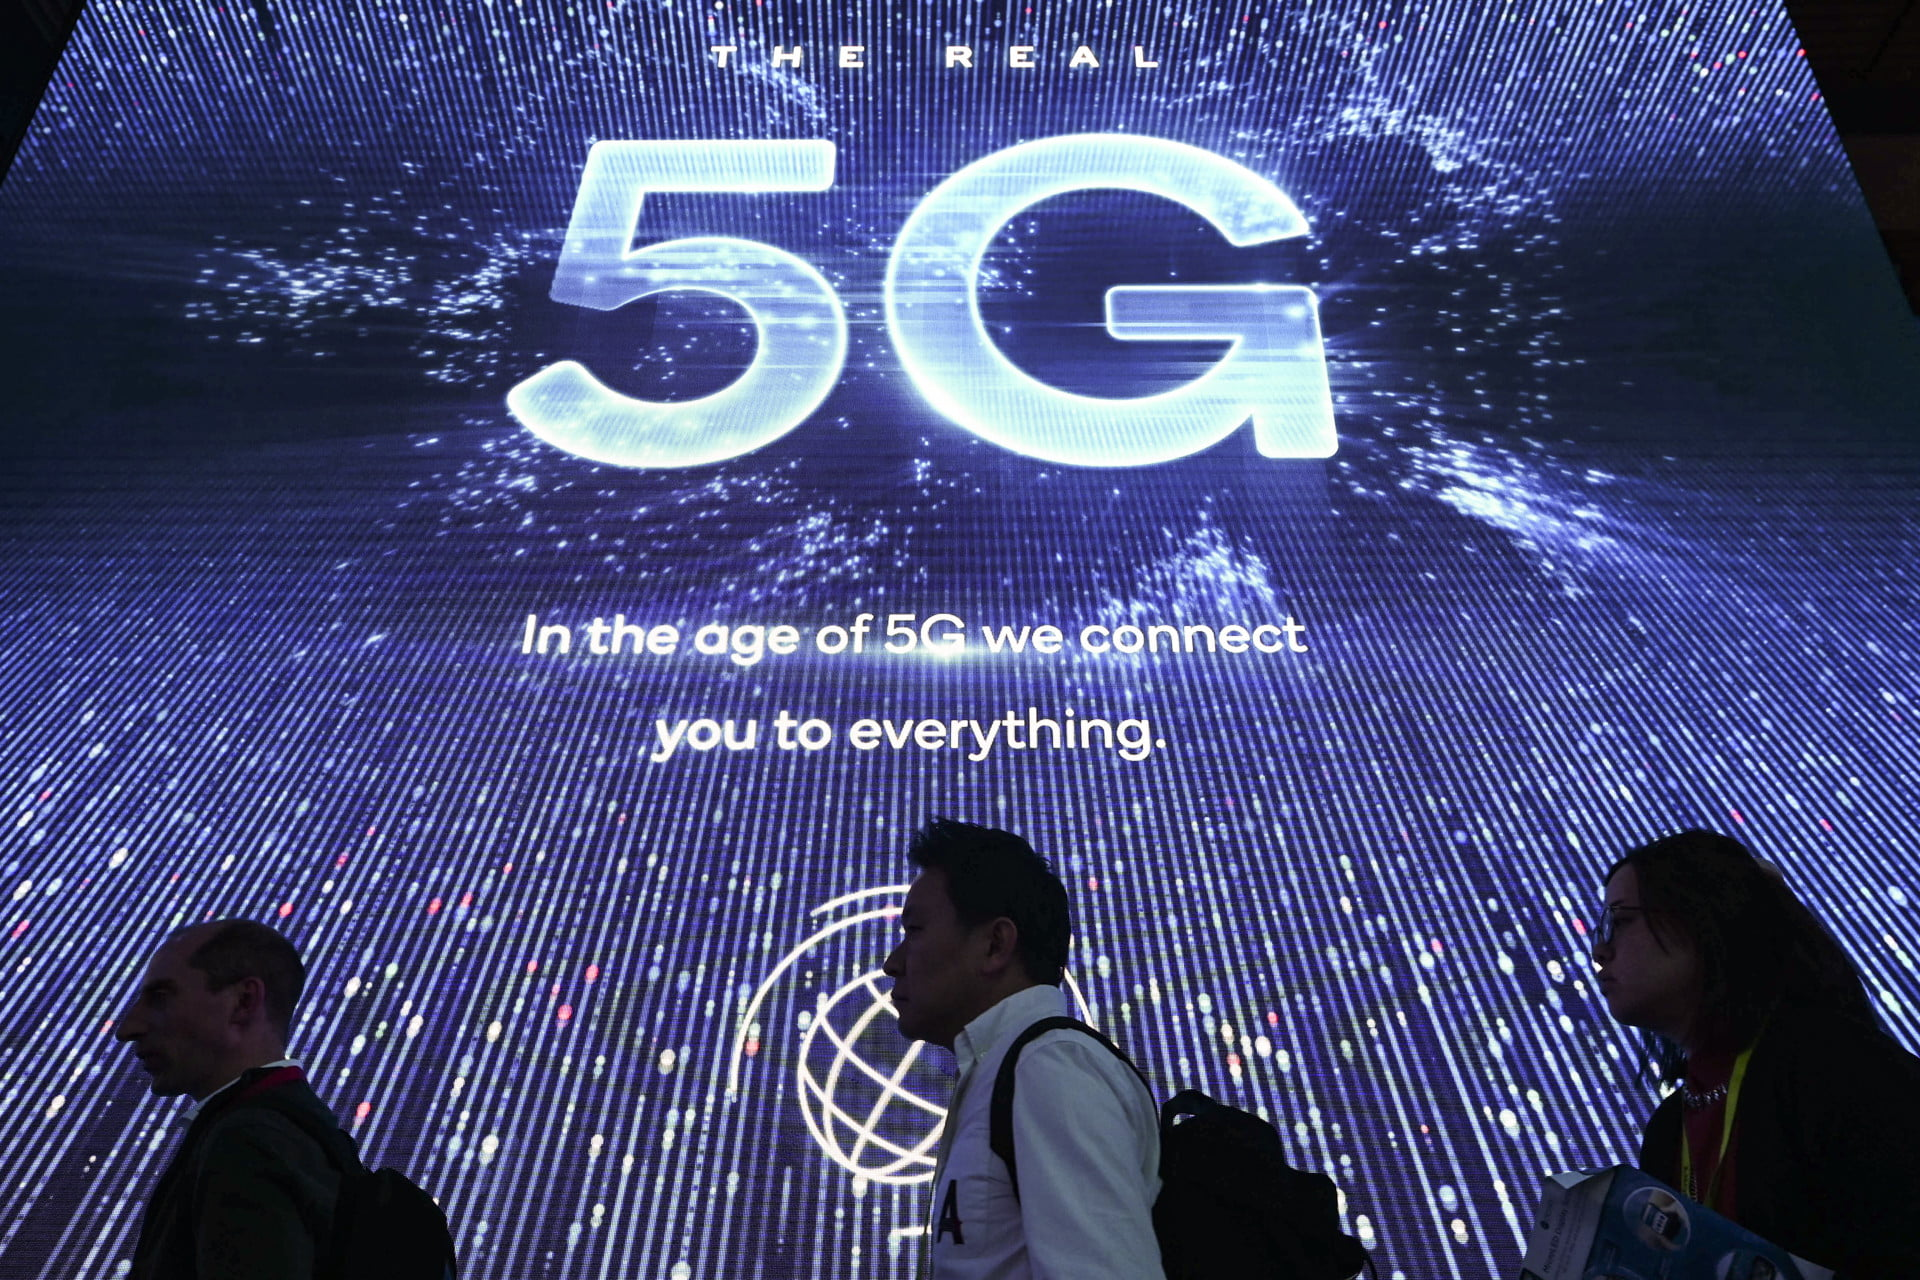 How Fast is 5G? Fifth Generation Mobile Network Speeds